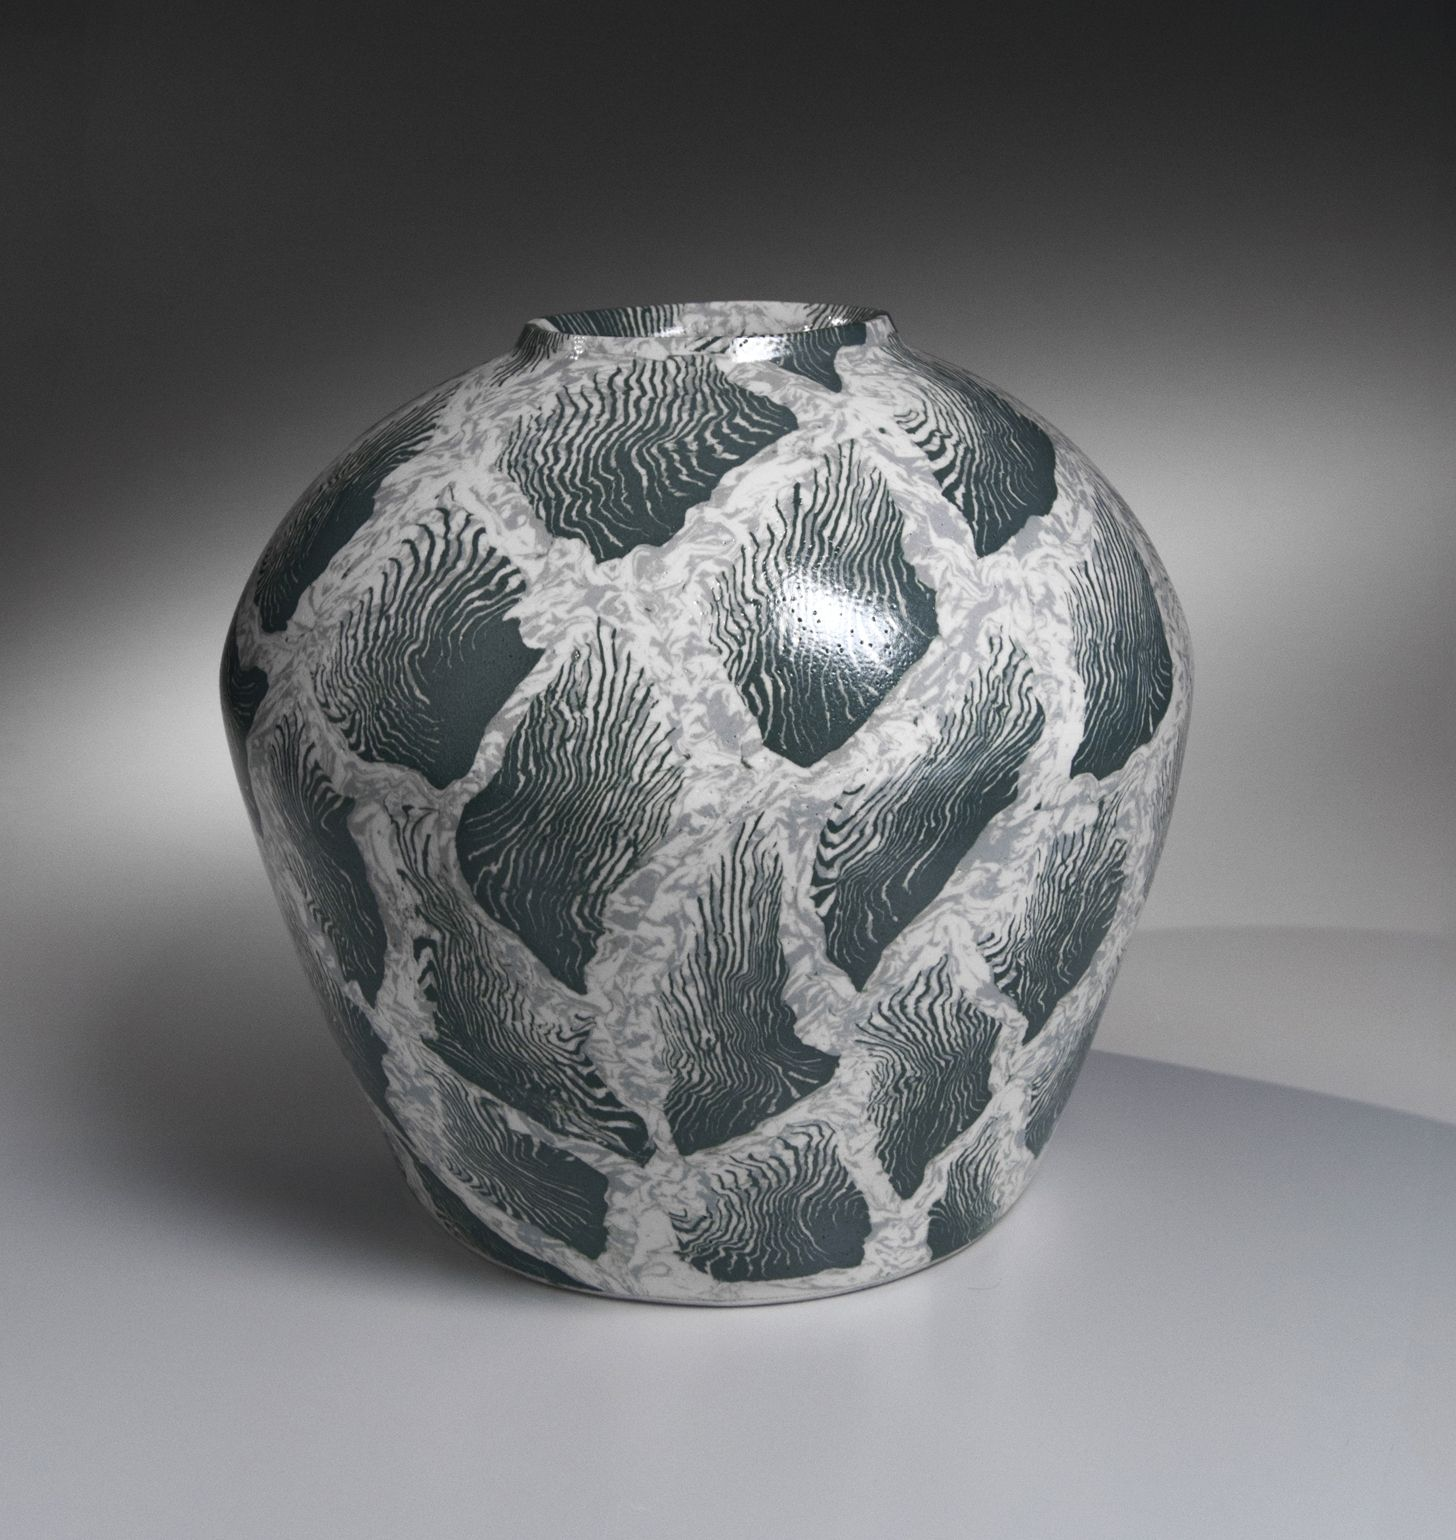 Matsui Kōsei (1927-2003), Large neriage vessel with tidal-grass patterning